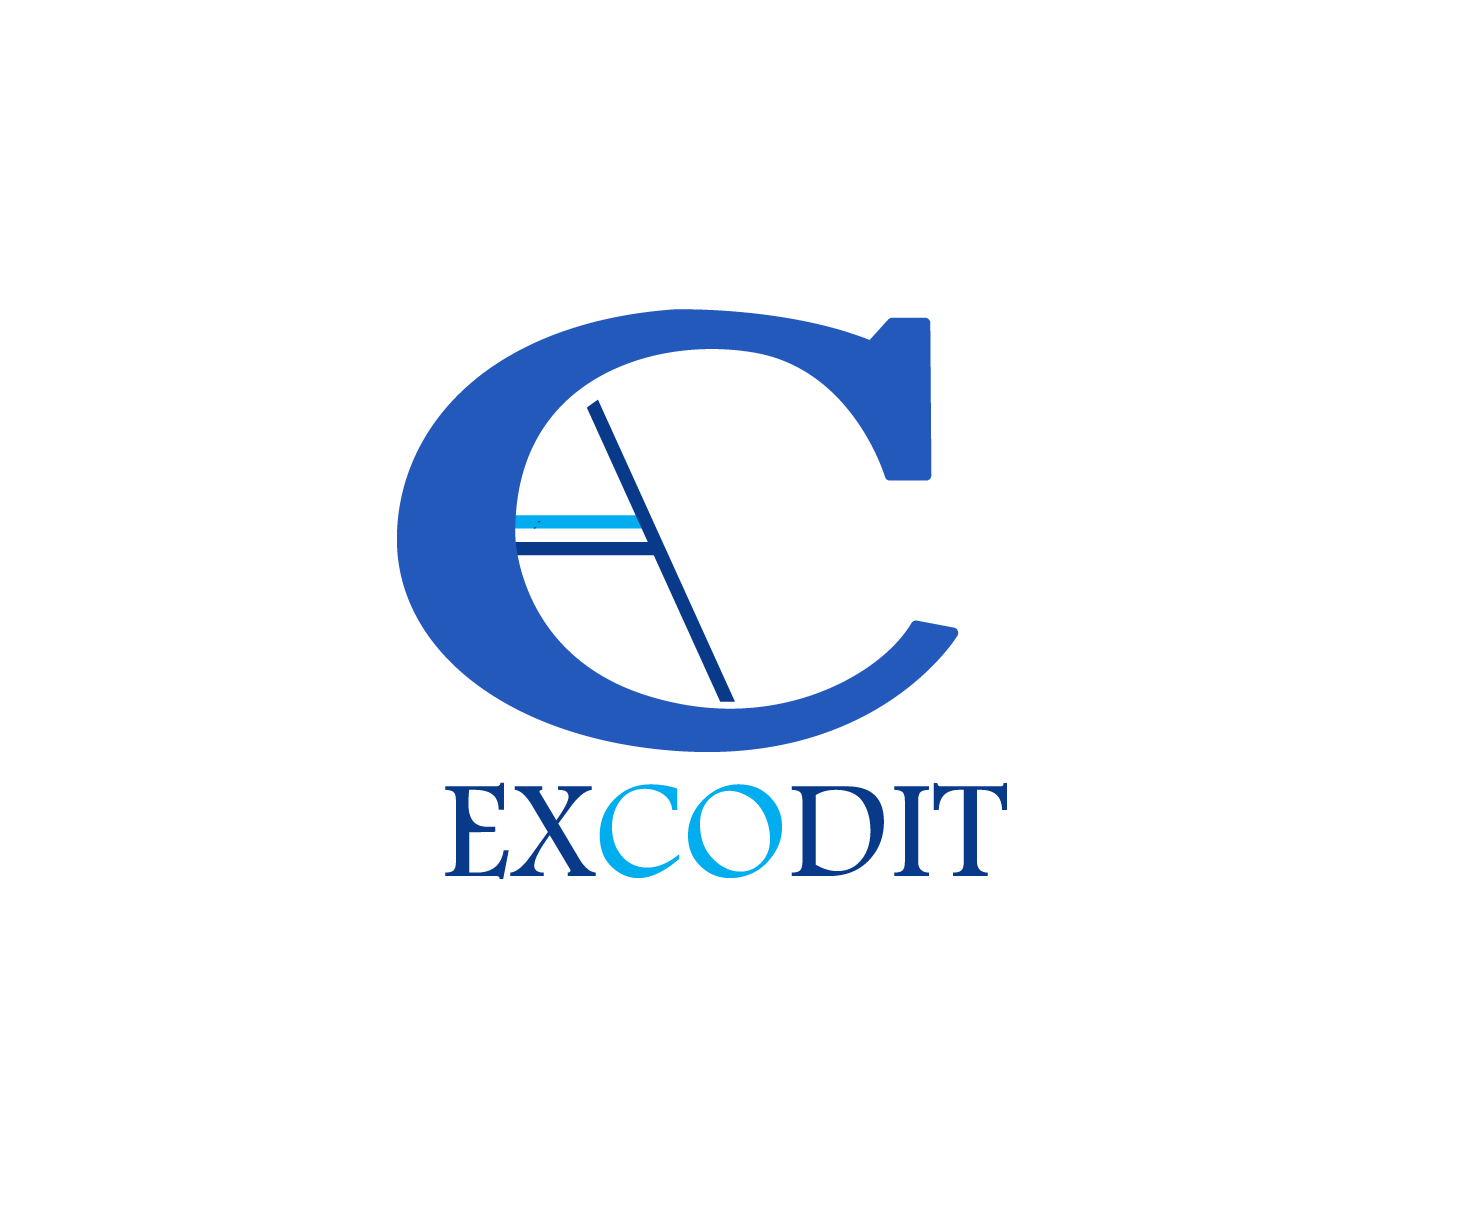 Excodit